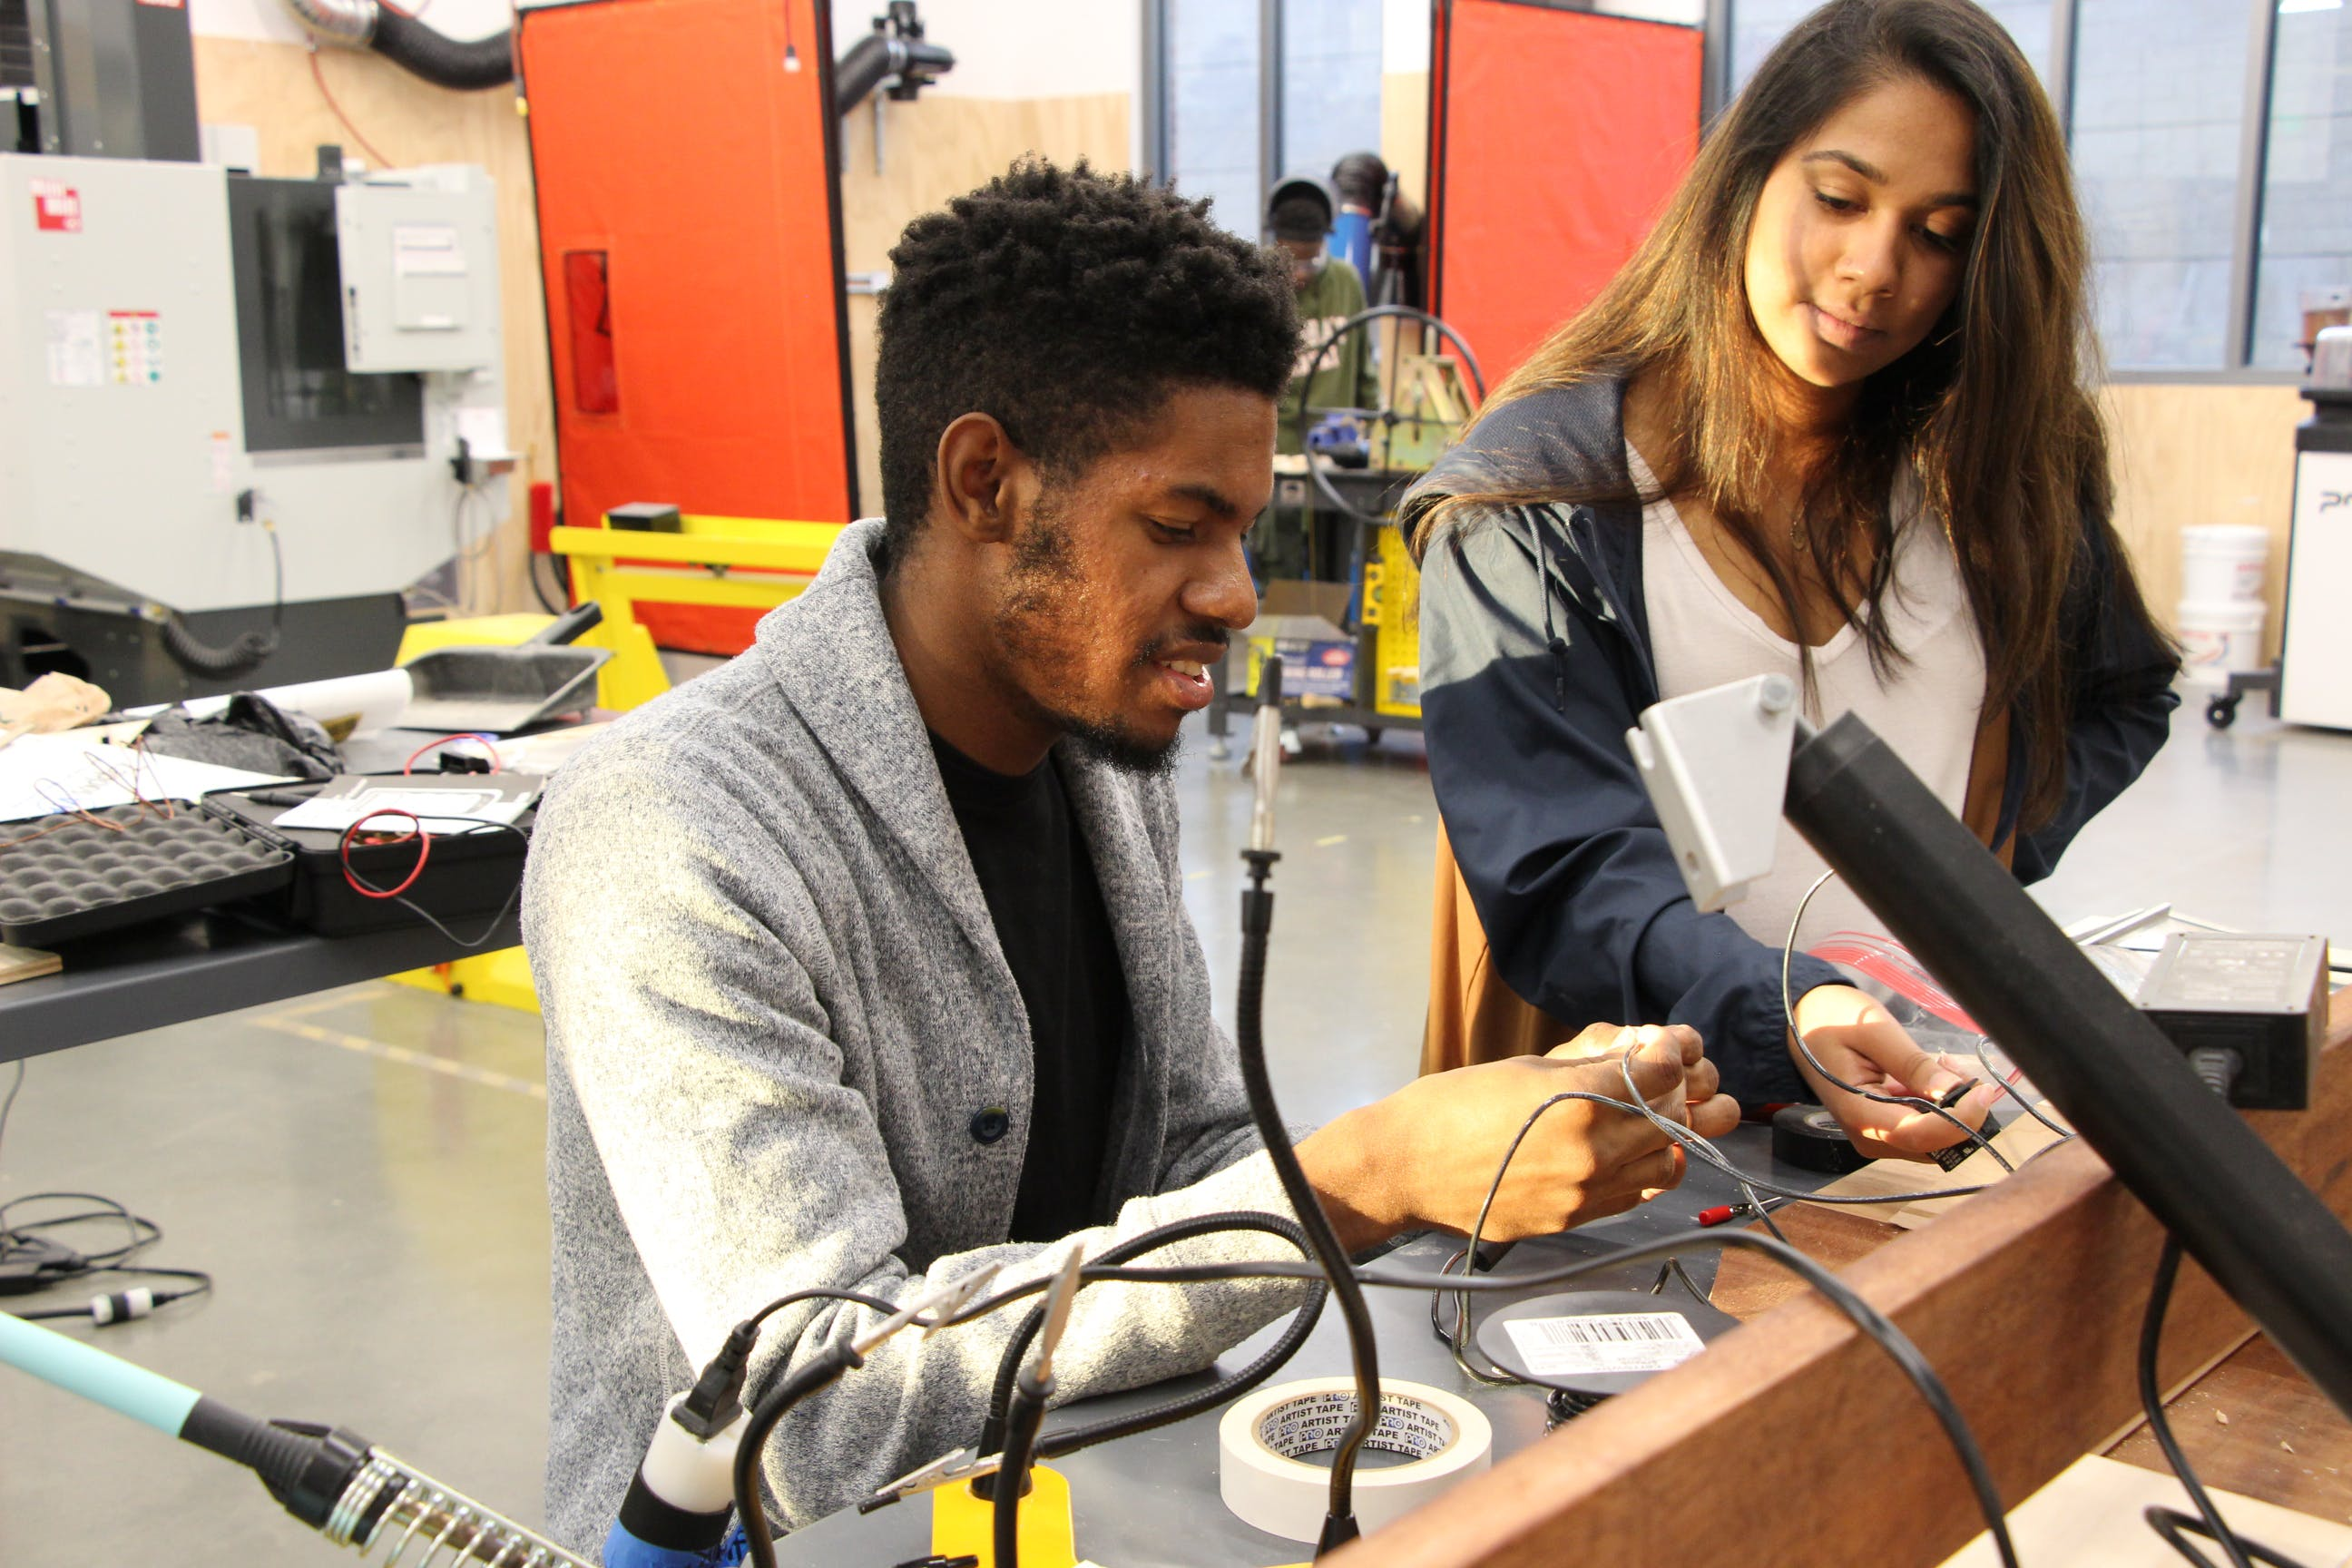 Two students at work bench